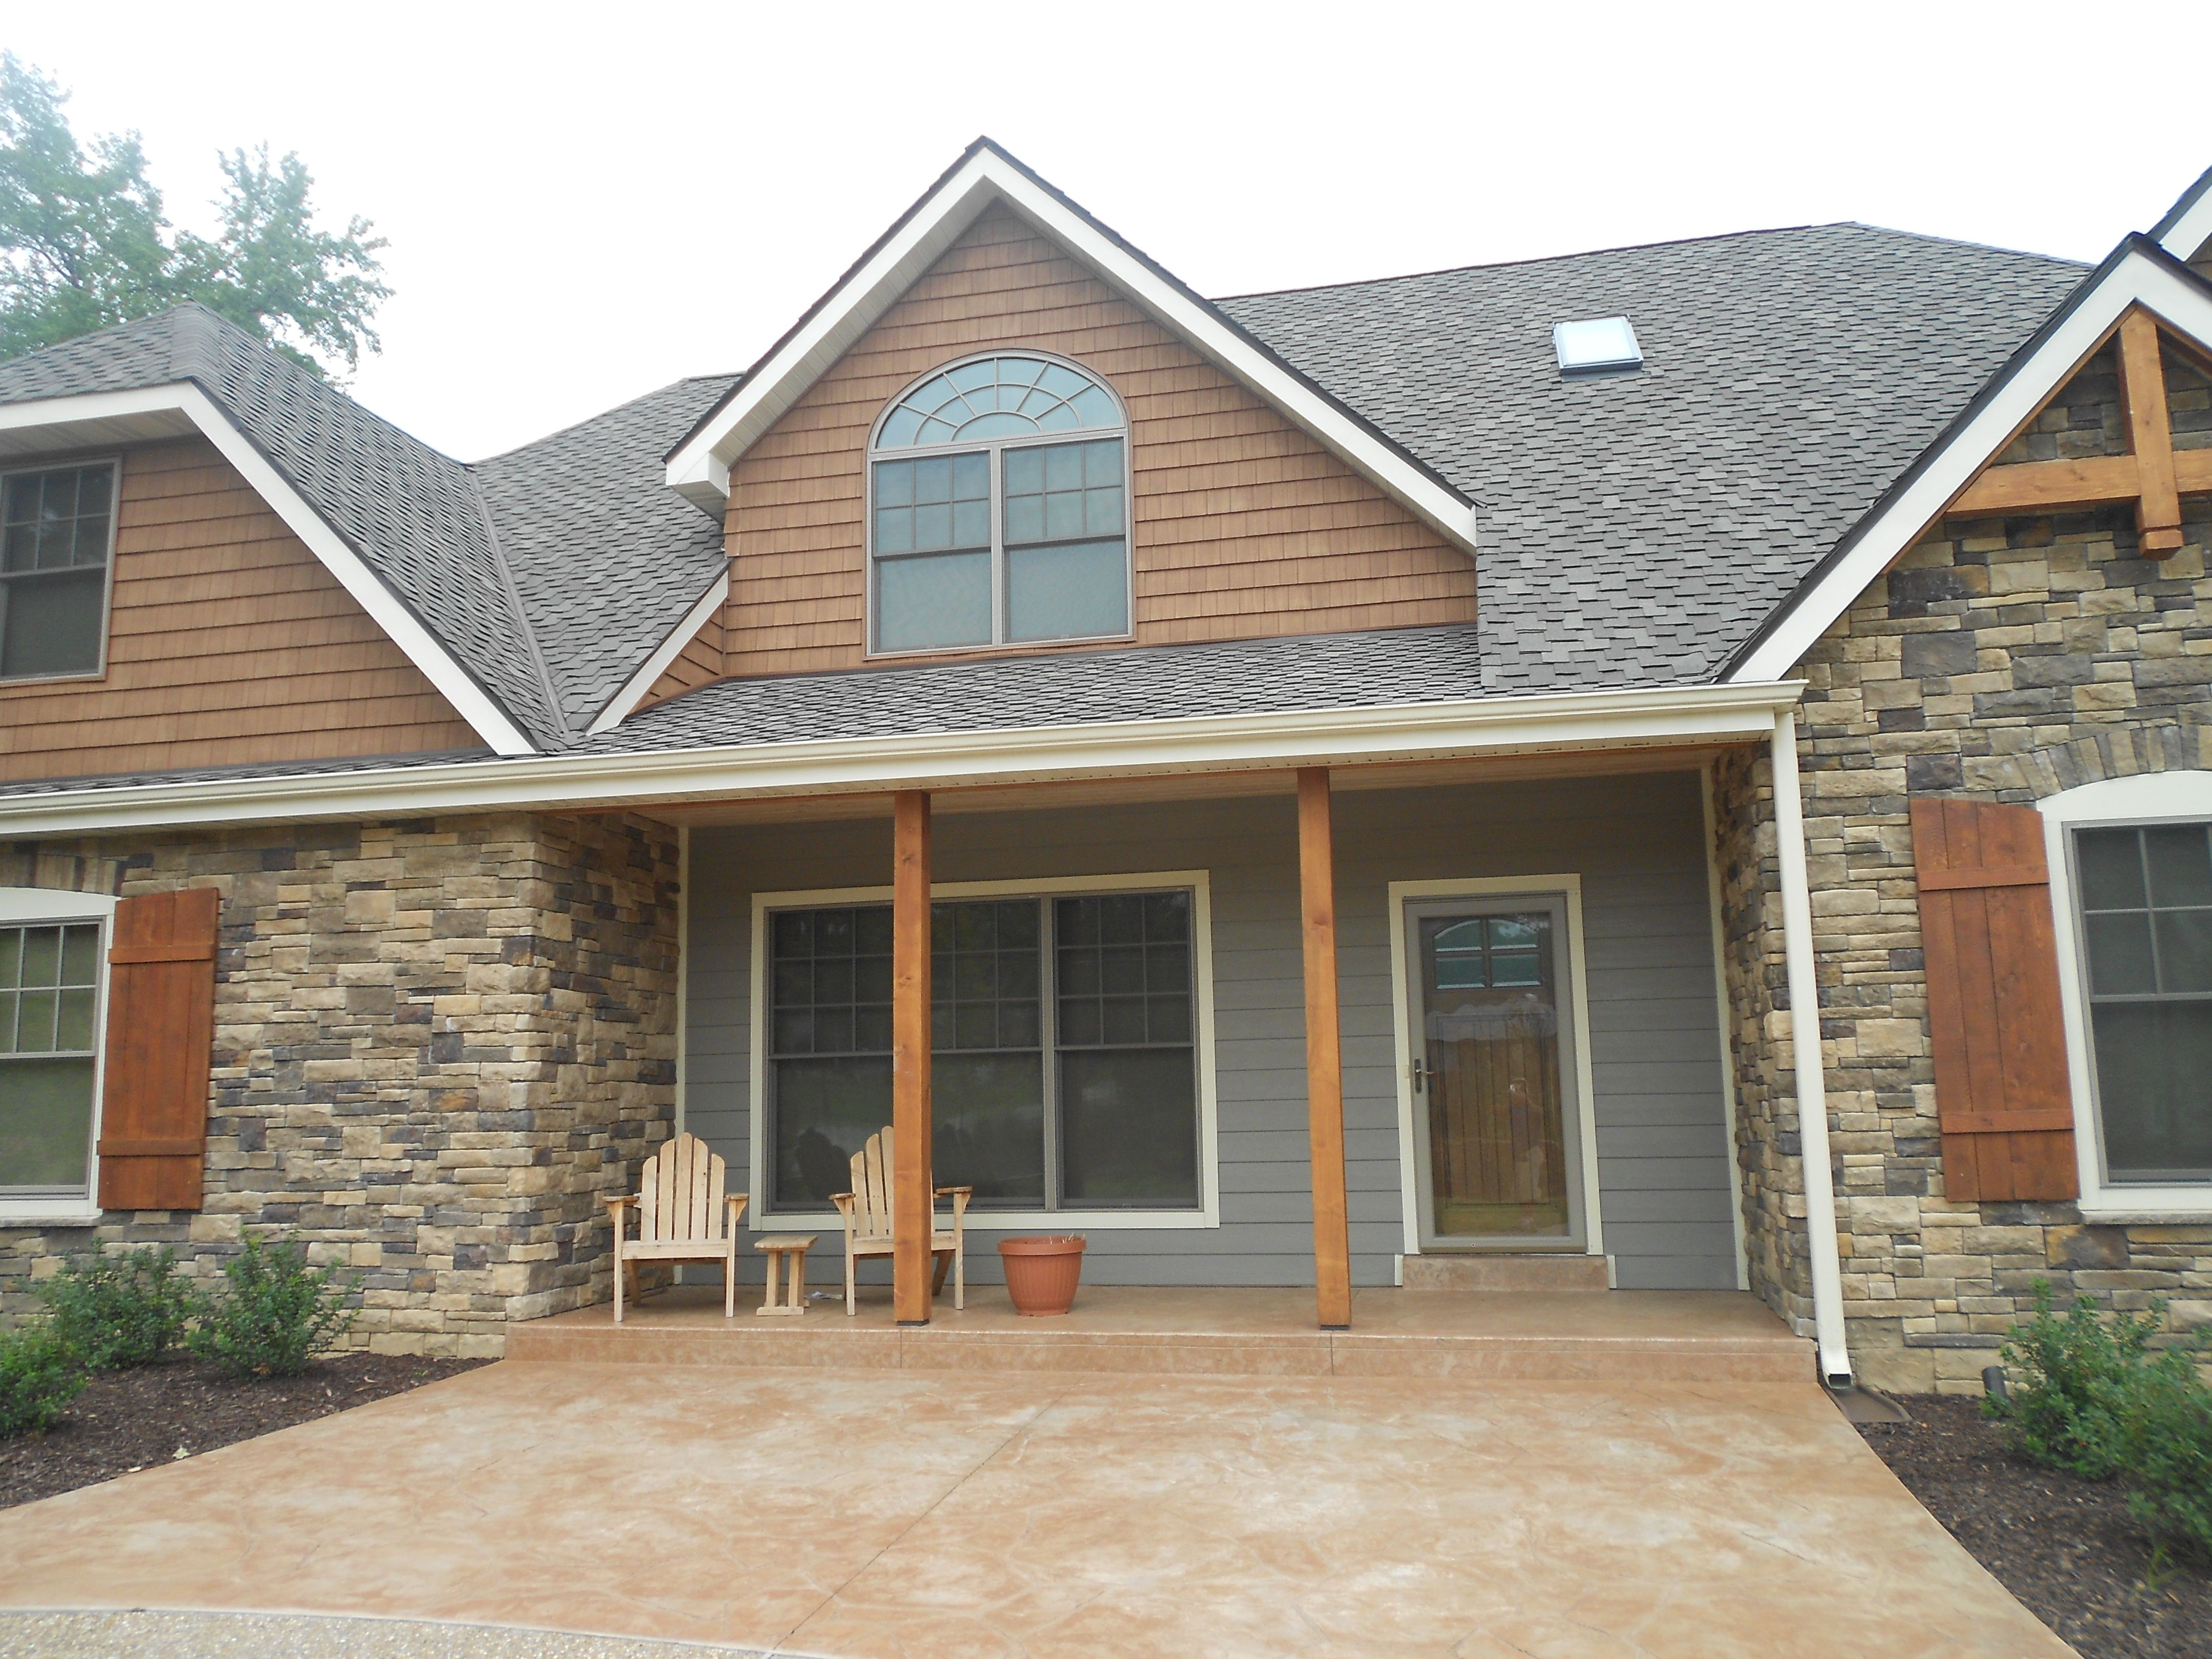 Front Of The House With Cedar Impressions Shingles On Gables Brick Exterior House Brick Siding House Exterior